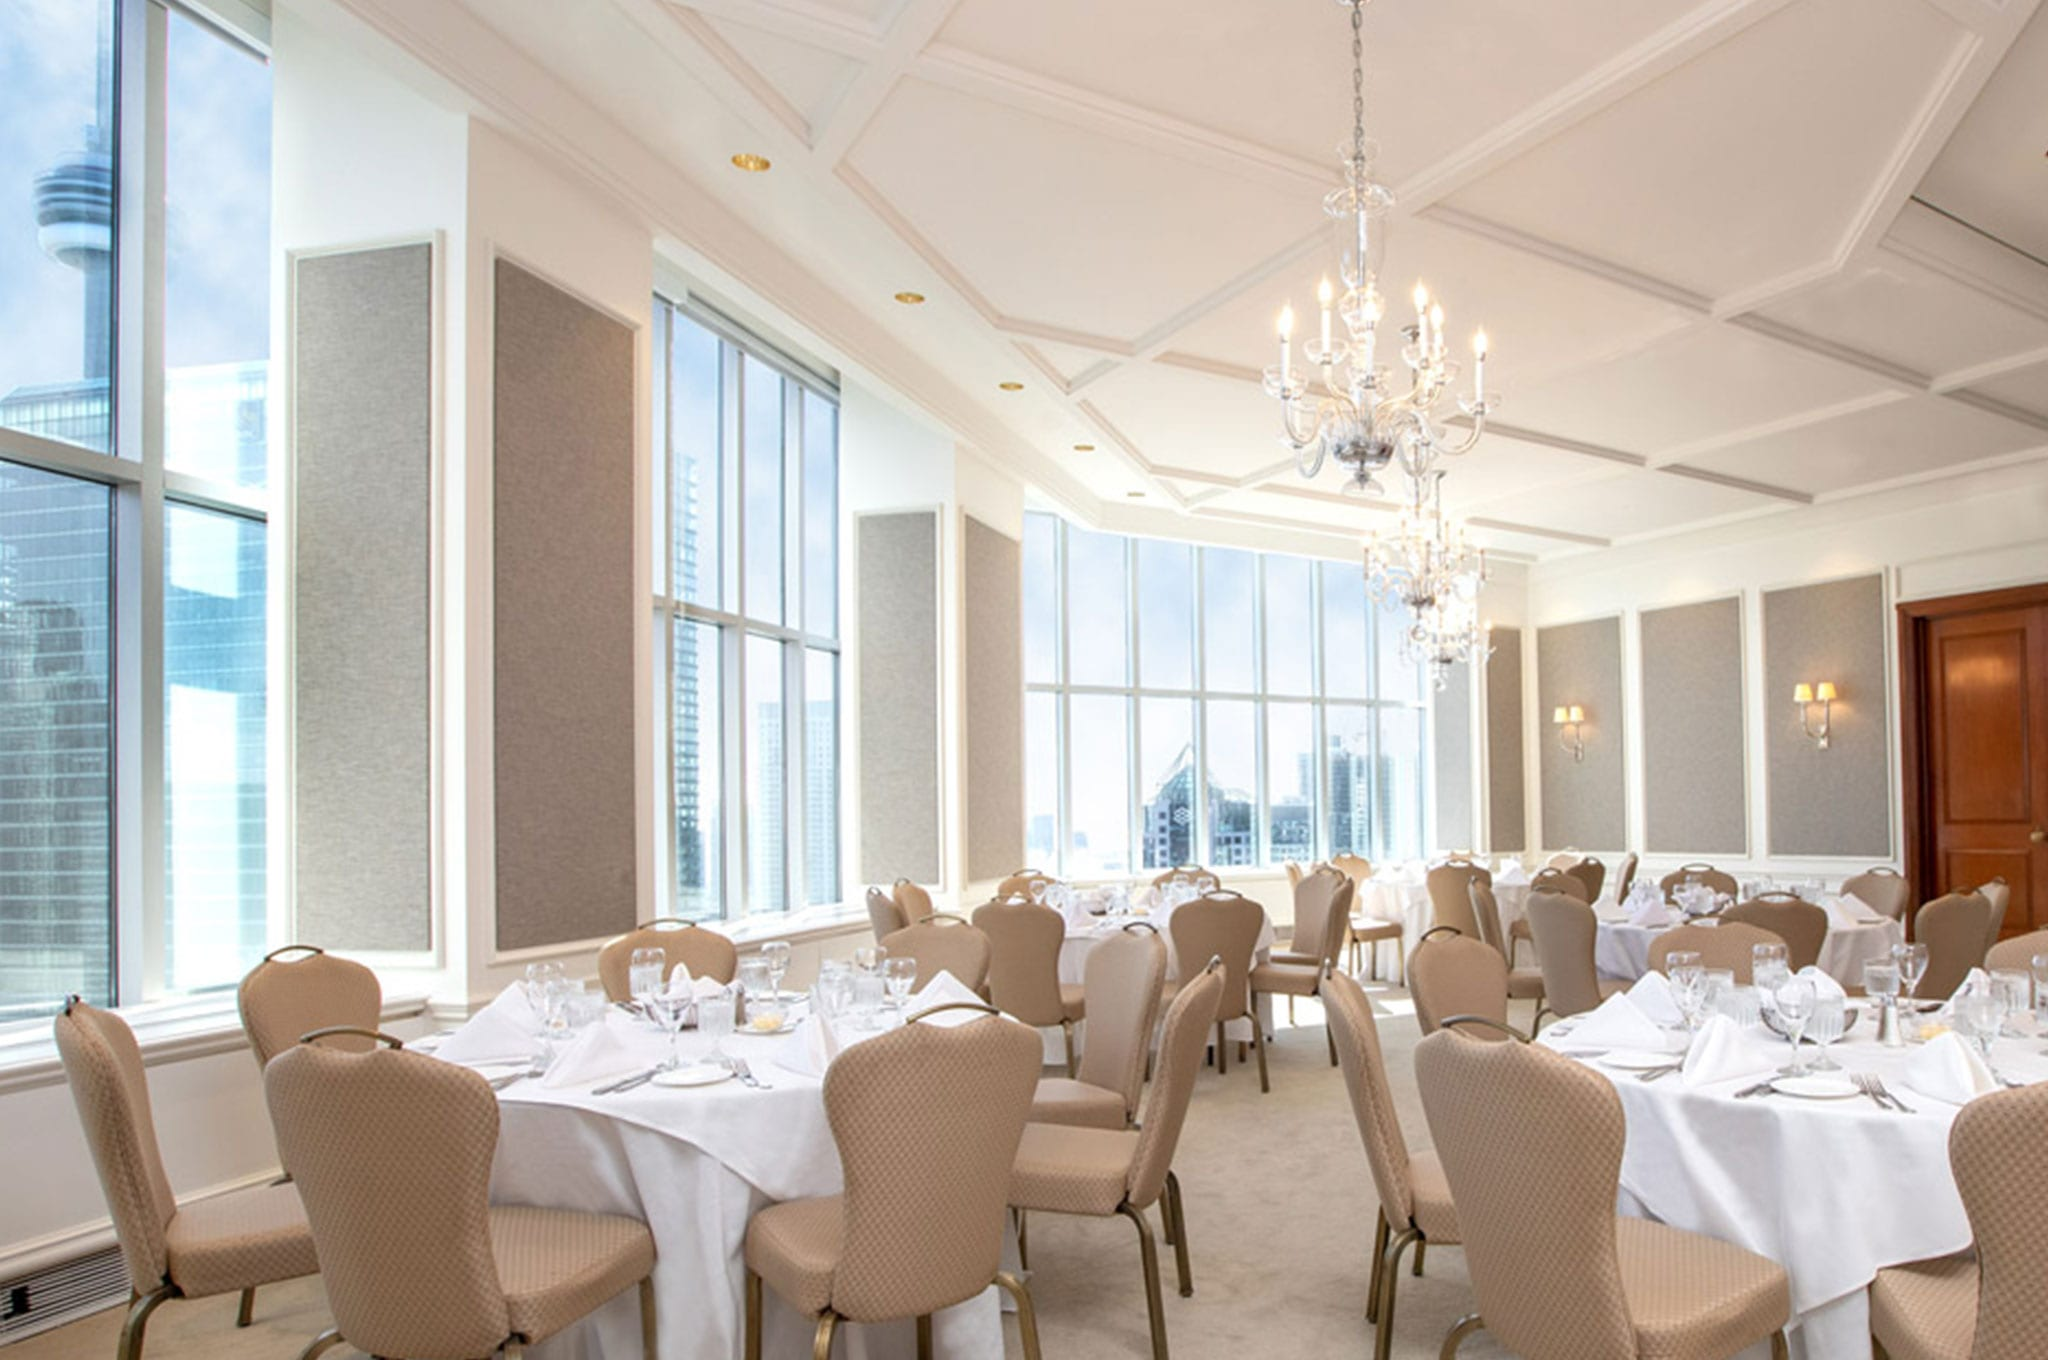 The-Top-20-Corporate-Event-Venues-in-Toronto-19